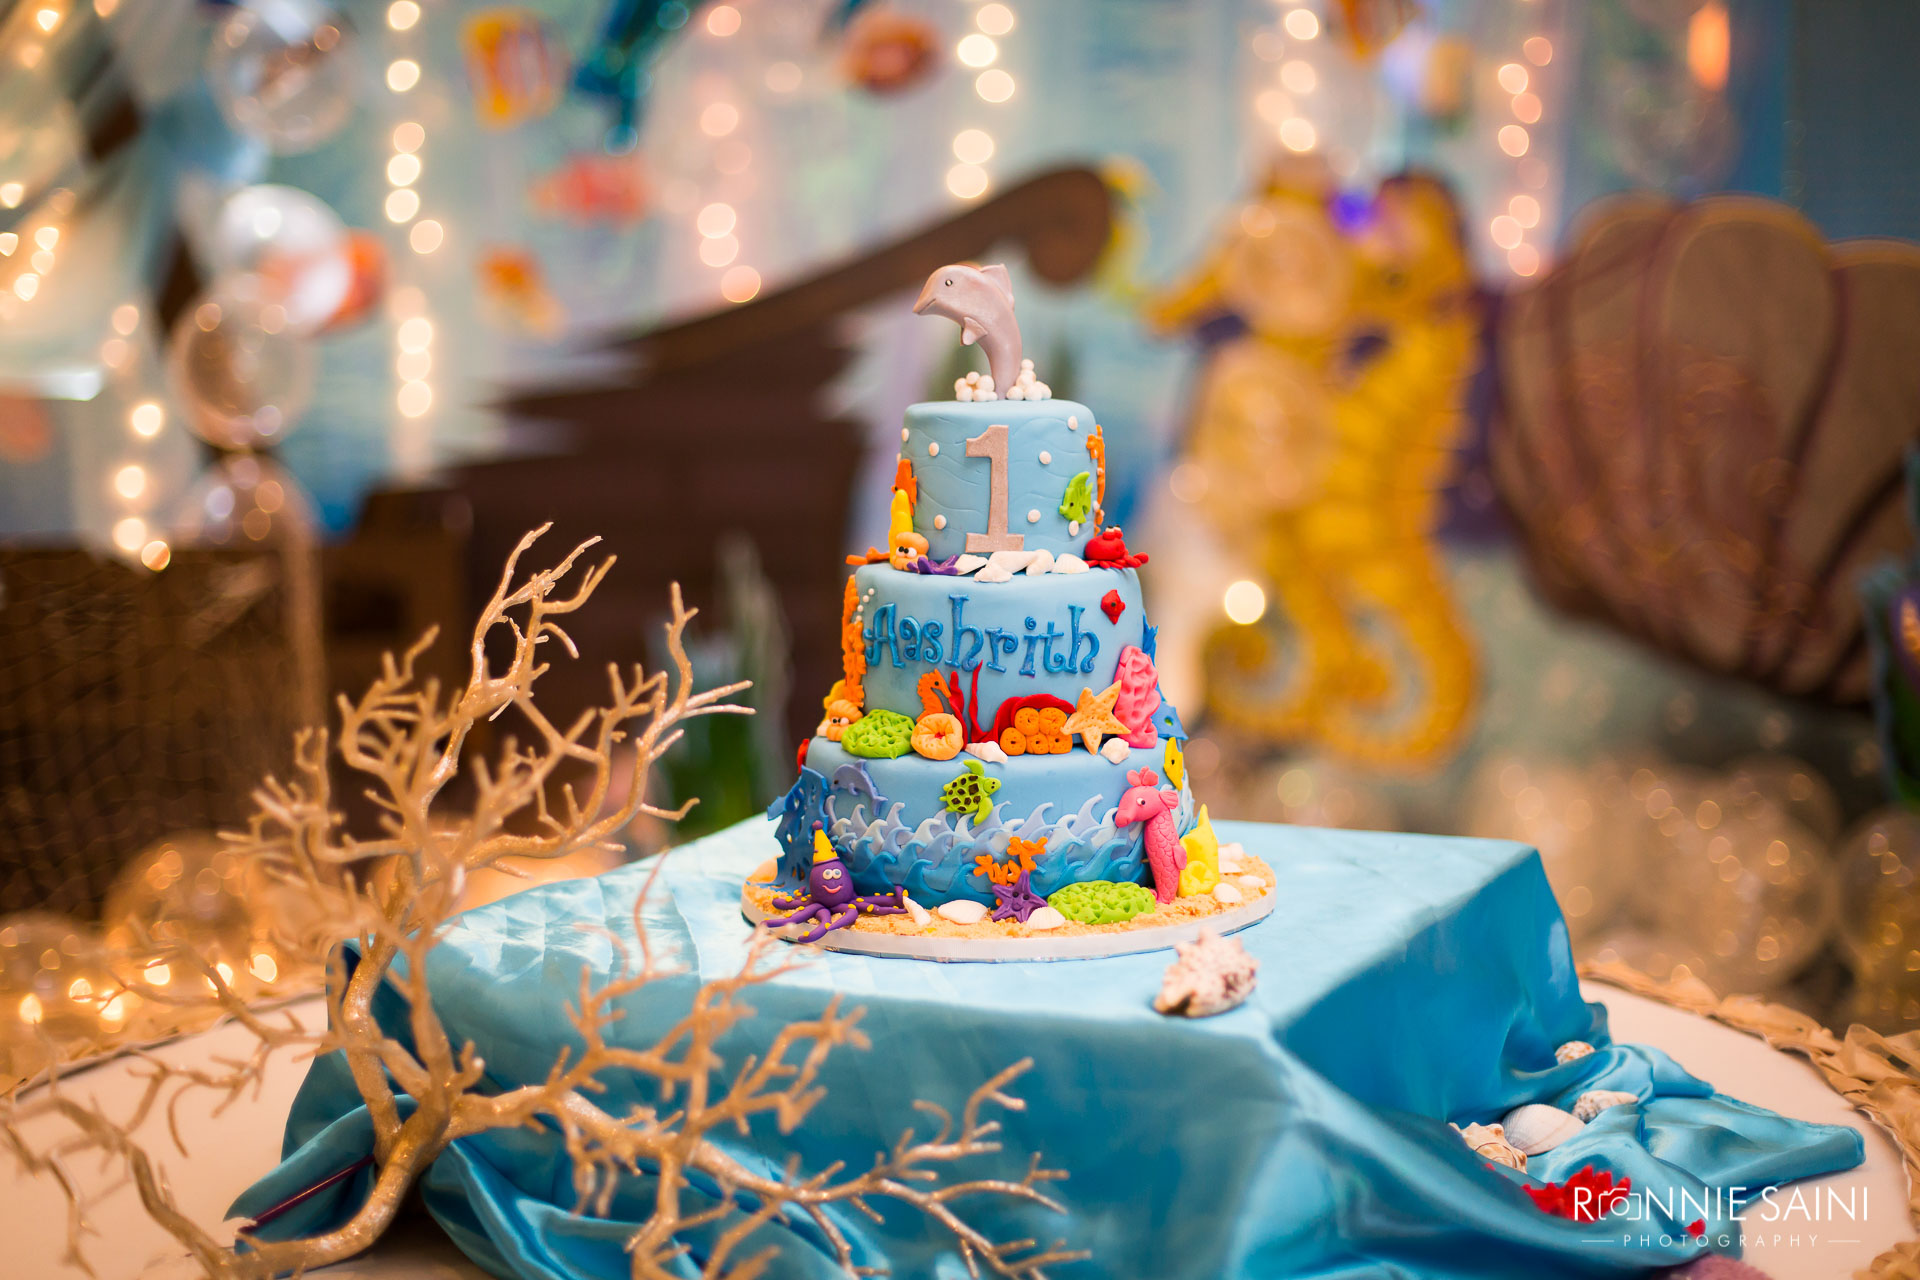 Kids Birthday Party Event Photography Boston Ronnie Saini Photography